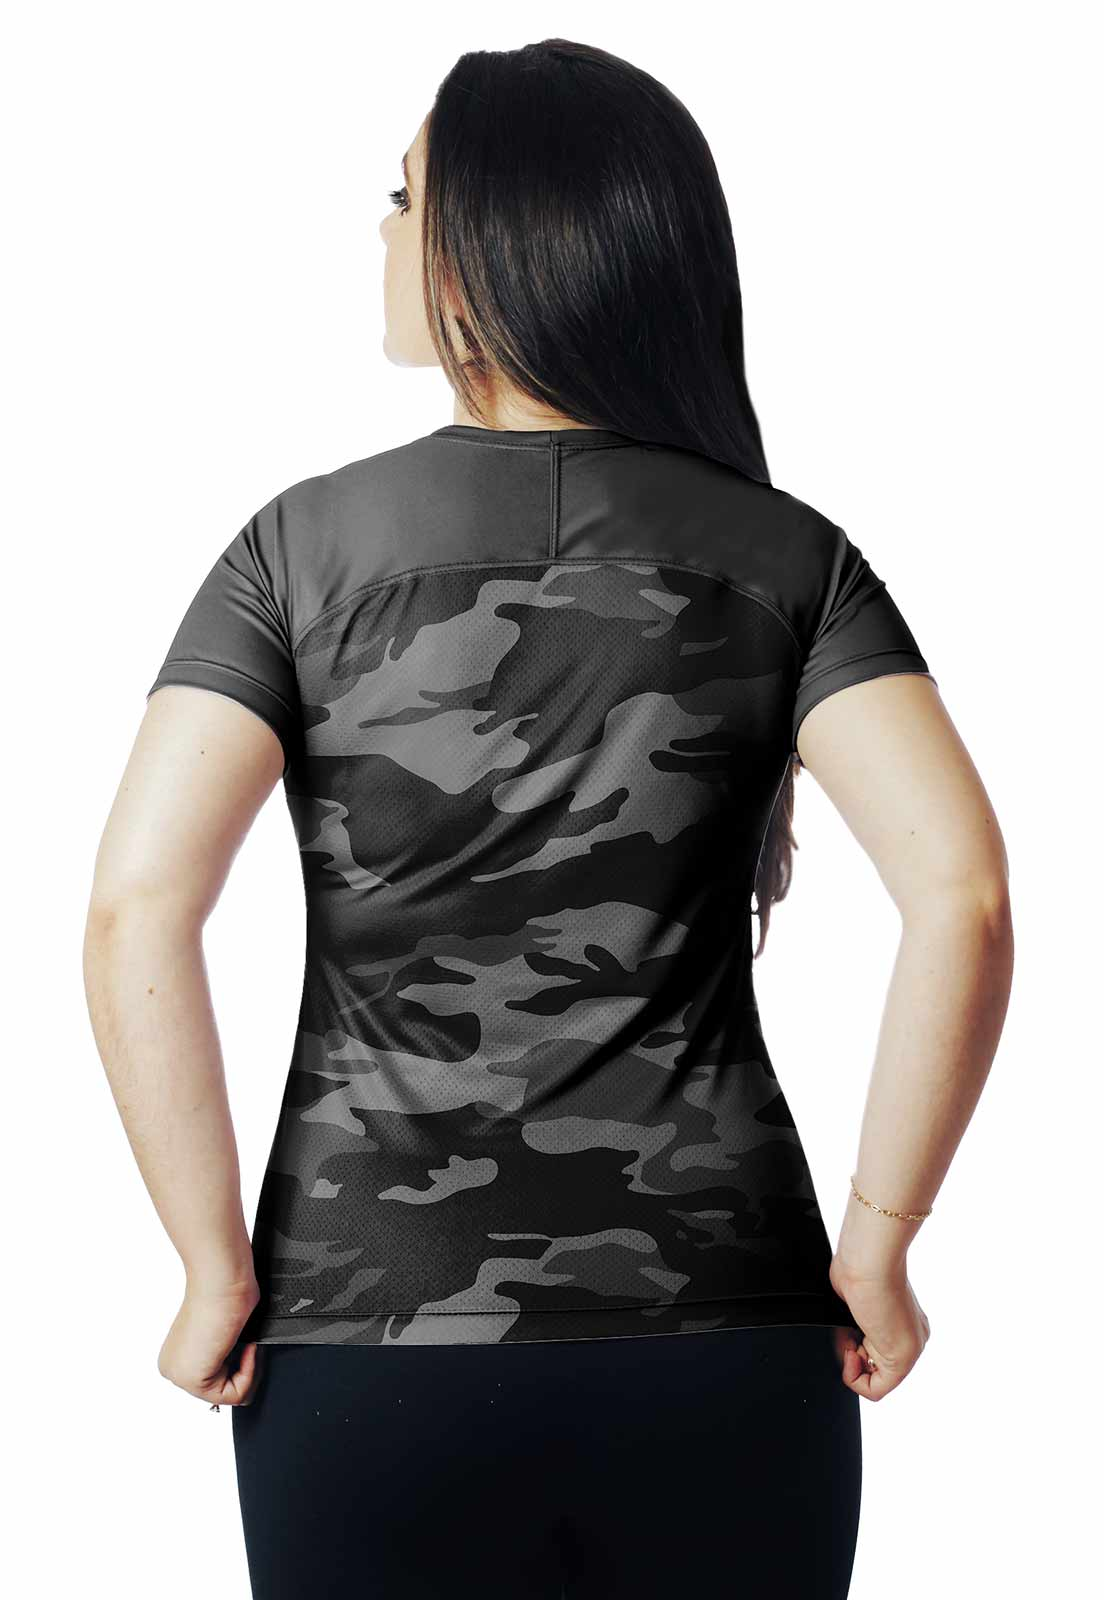 CAMISA DE PESCA DIA PROTEÇÃO UV URBANO BLACK 01 REAL HUNTER FEMININA  - REAL HUNTER OUTDOORS